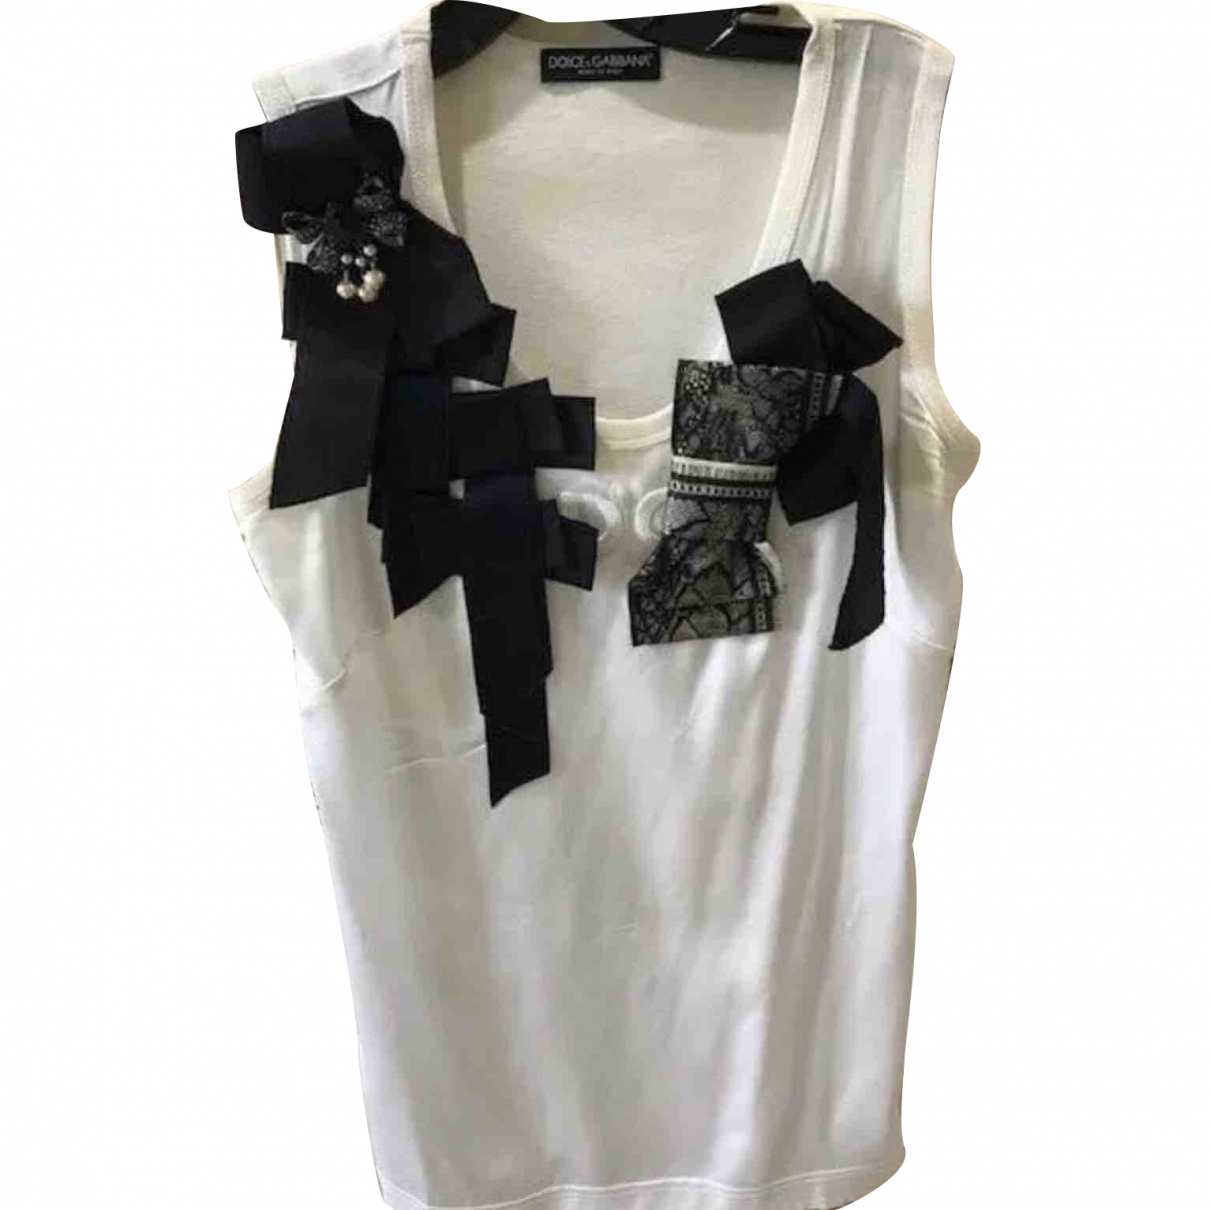 Dolce & Gabbana \N Top in  Weiss Seide